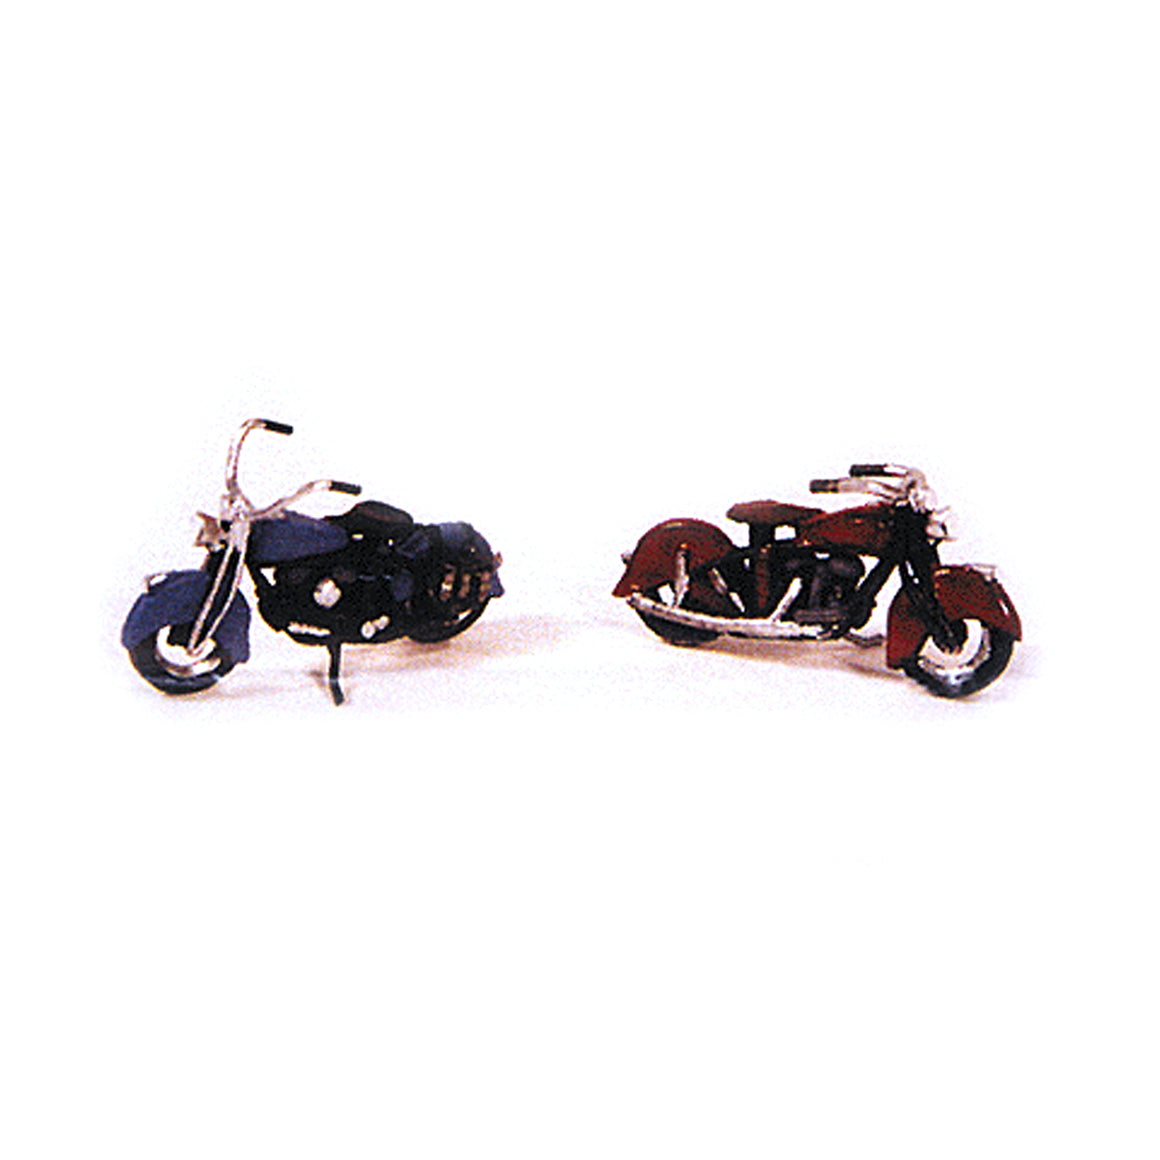 HO Scale: Classic 1947 Motorcycles - 2 Pack - Kit